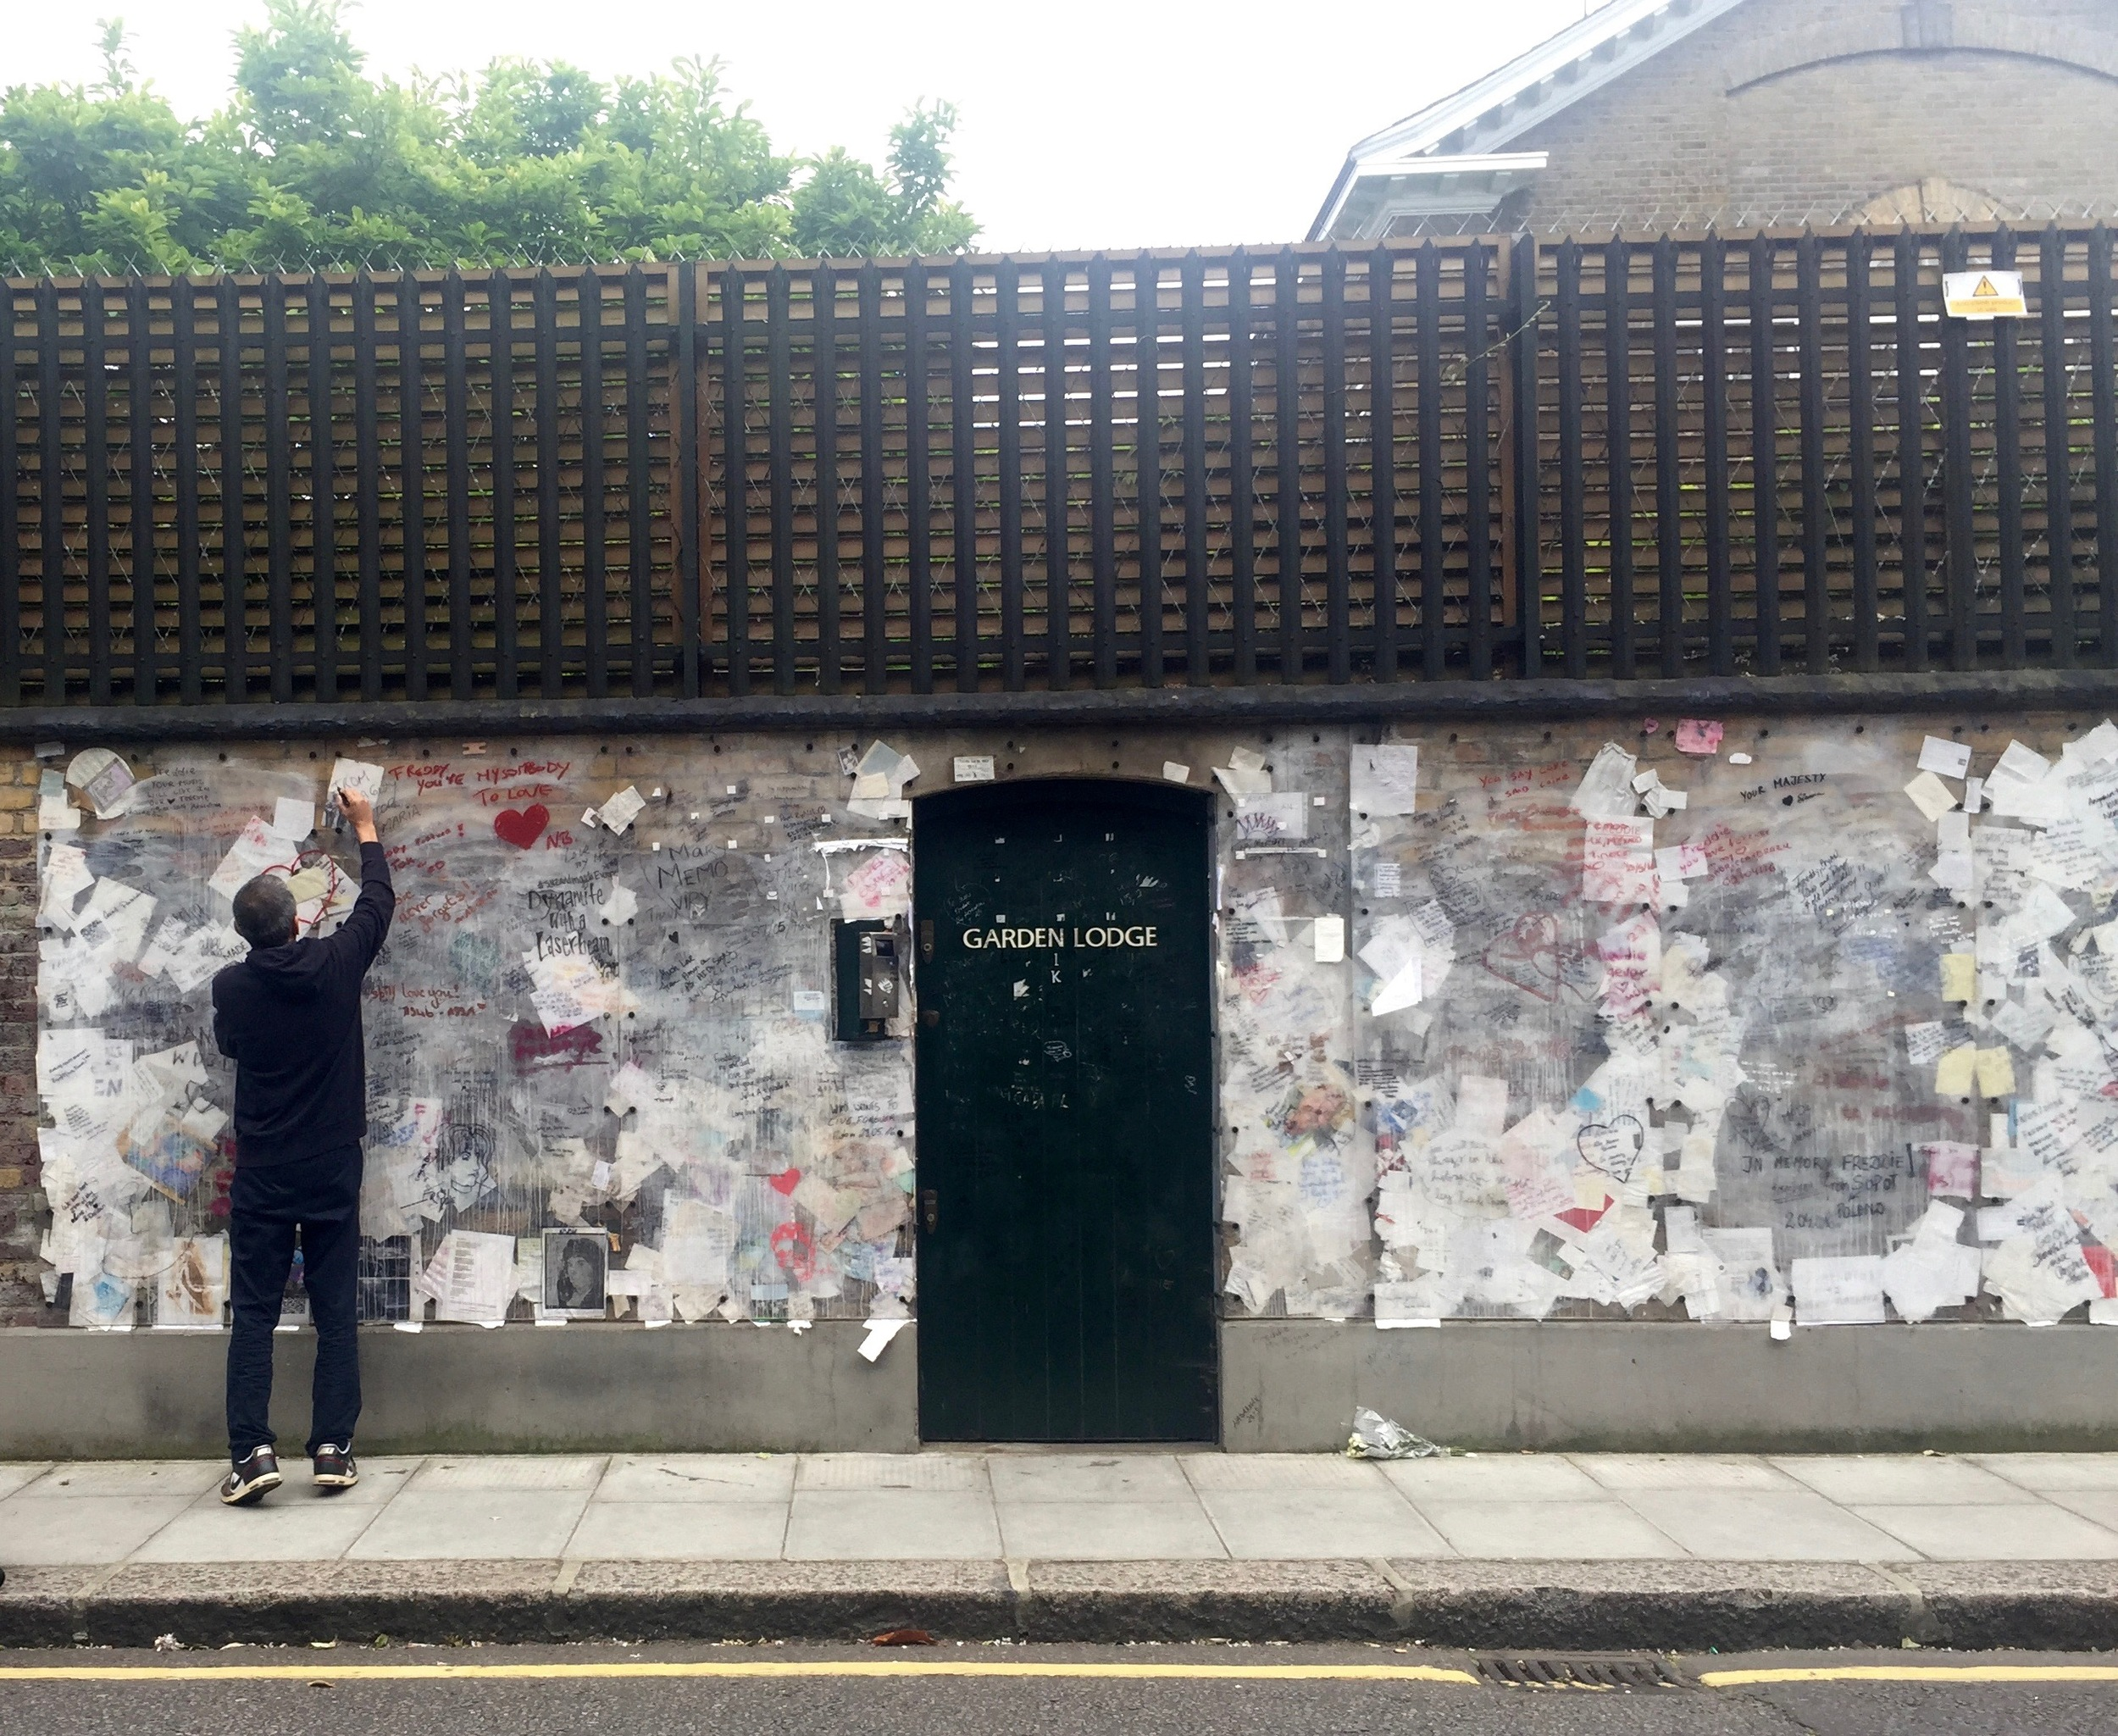 Signing the wall at 1 Logan Place, Kensington. Former home of Freddie Mercury.